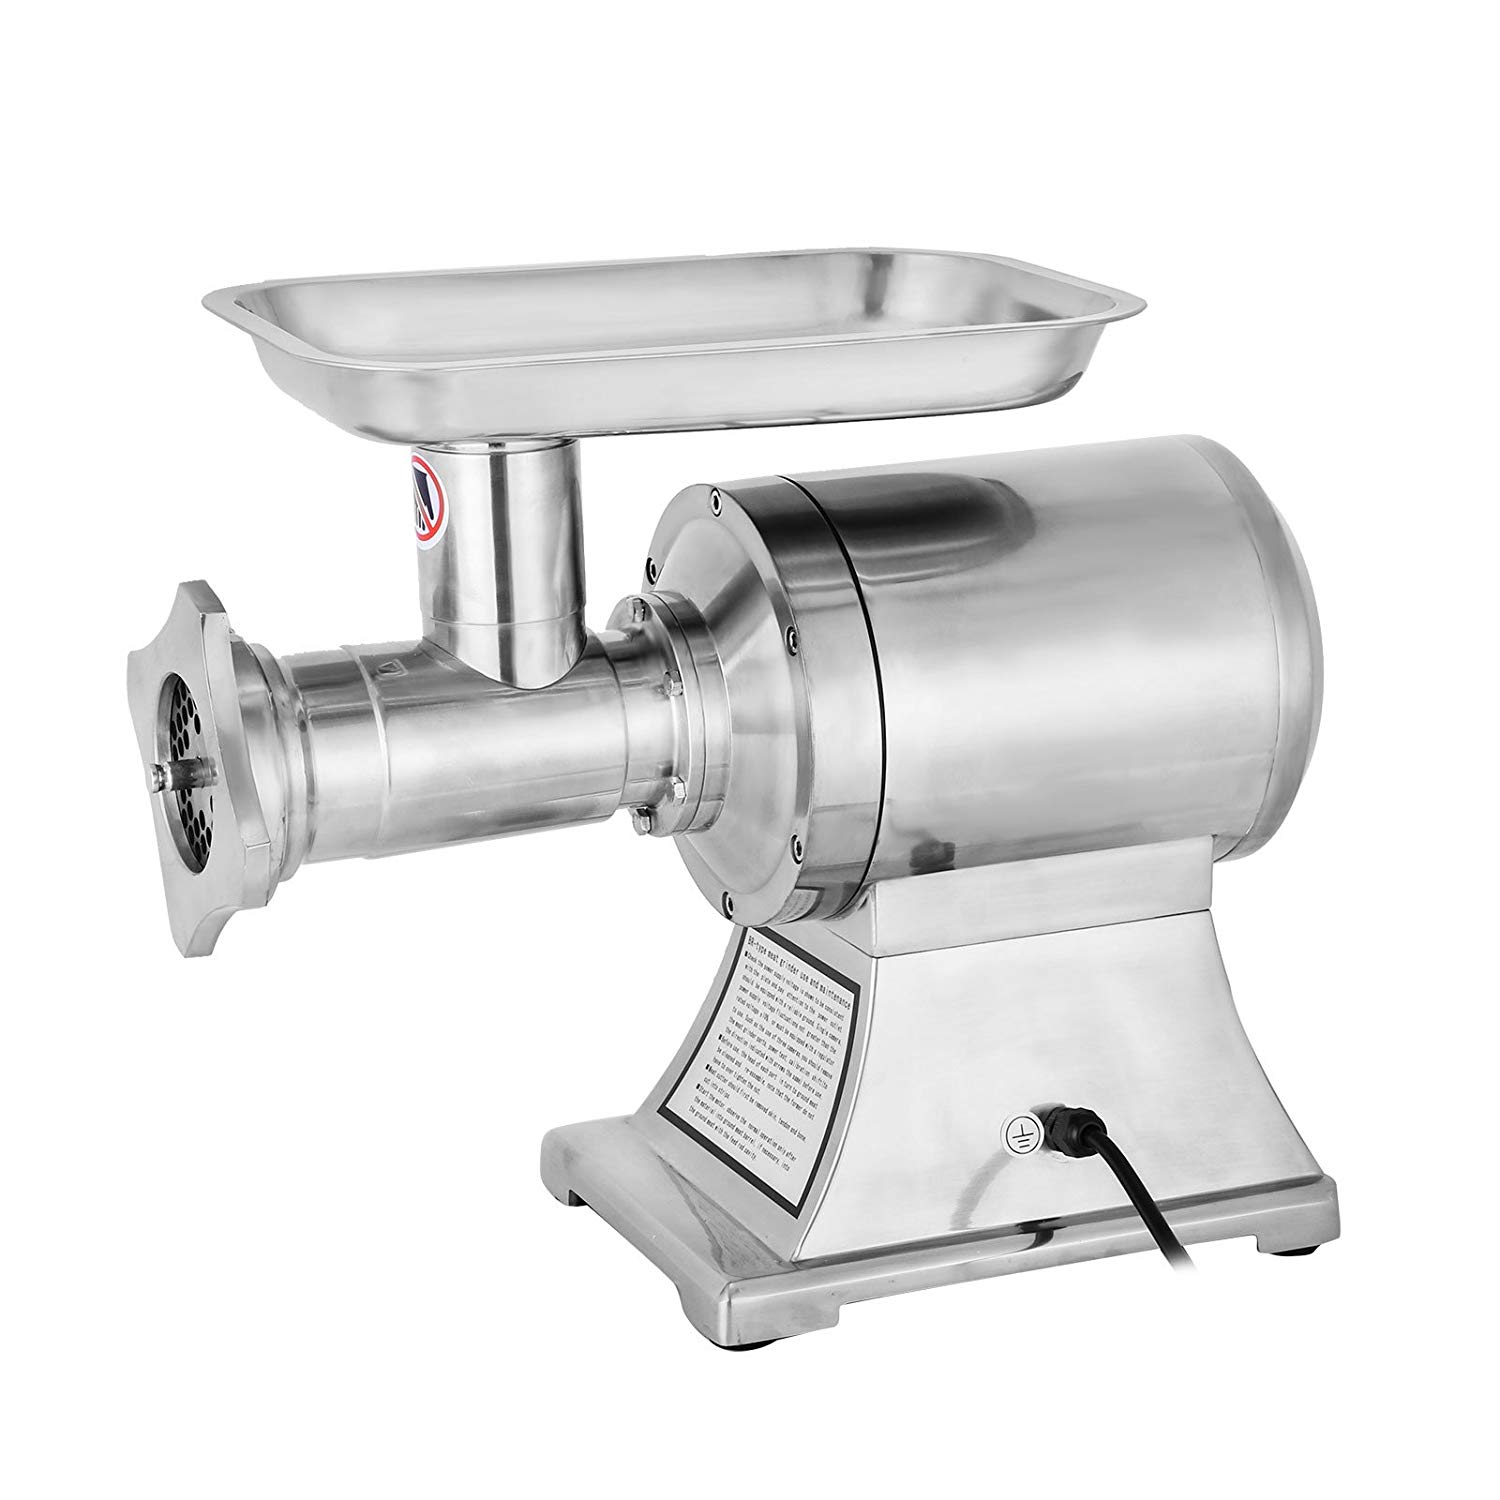 Happybuy 1.5hp/1100w meat grinder stainless steel